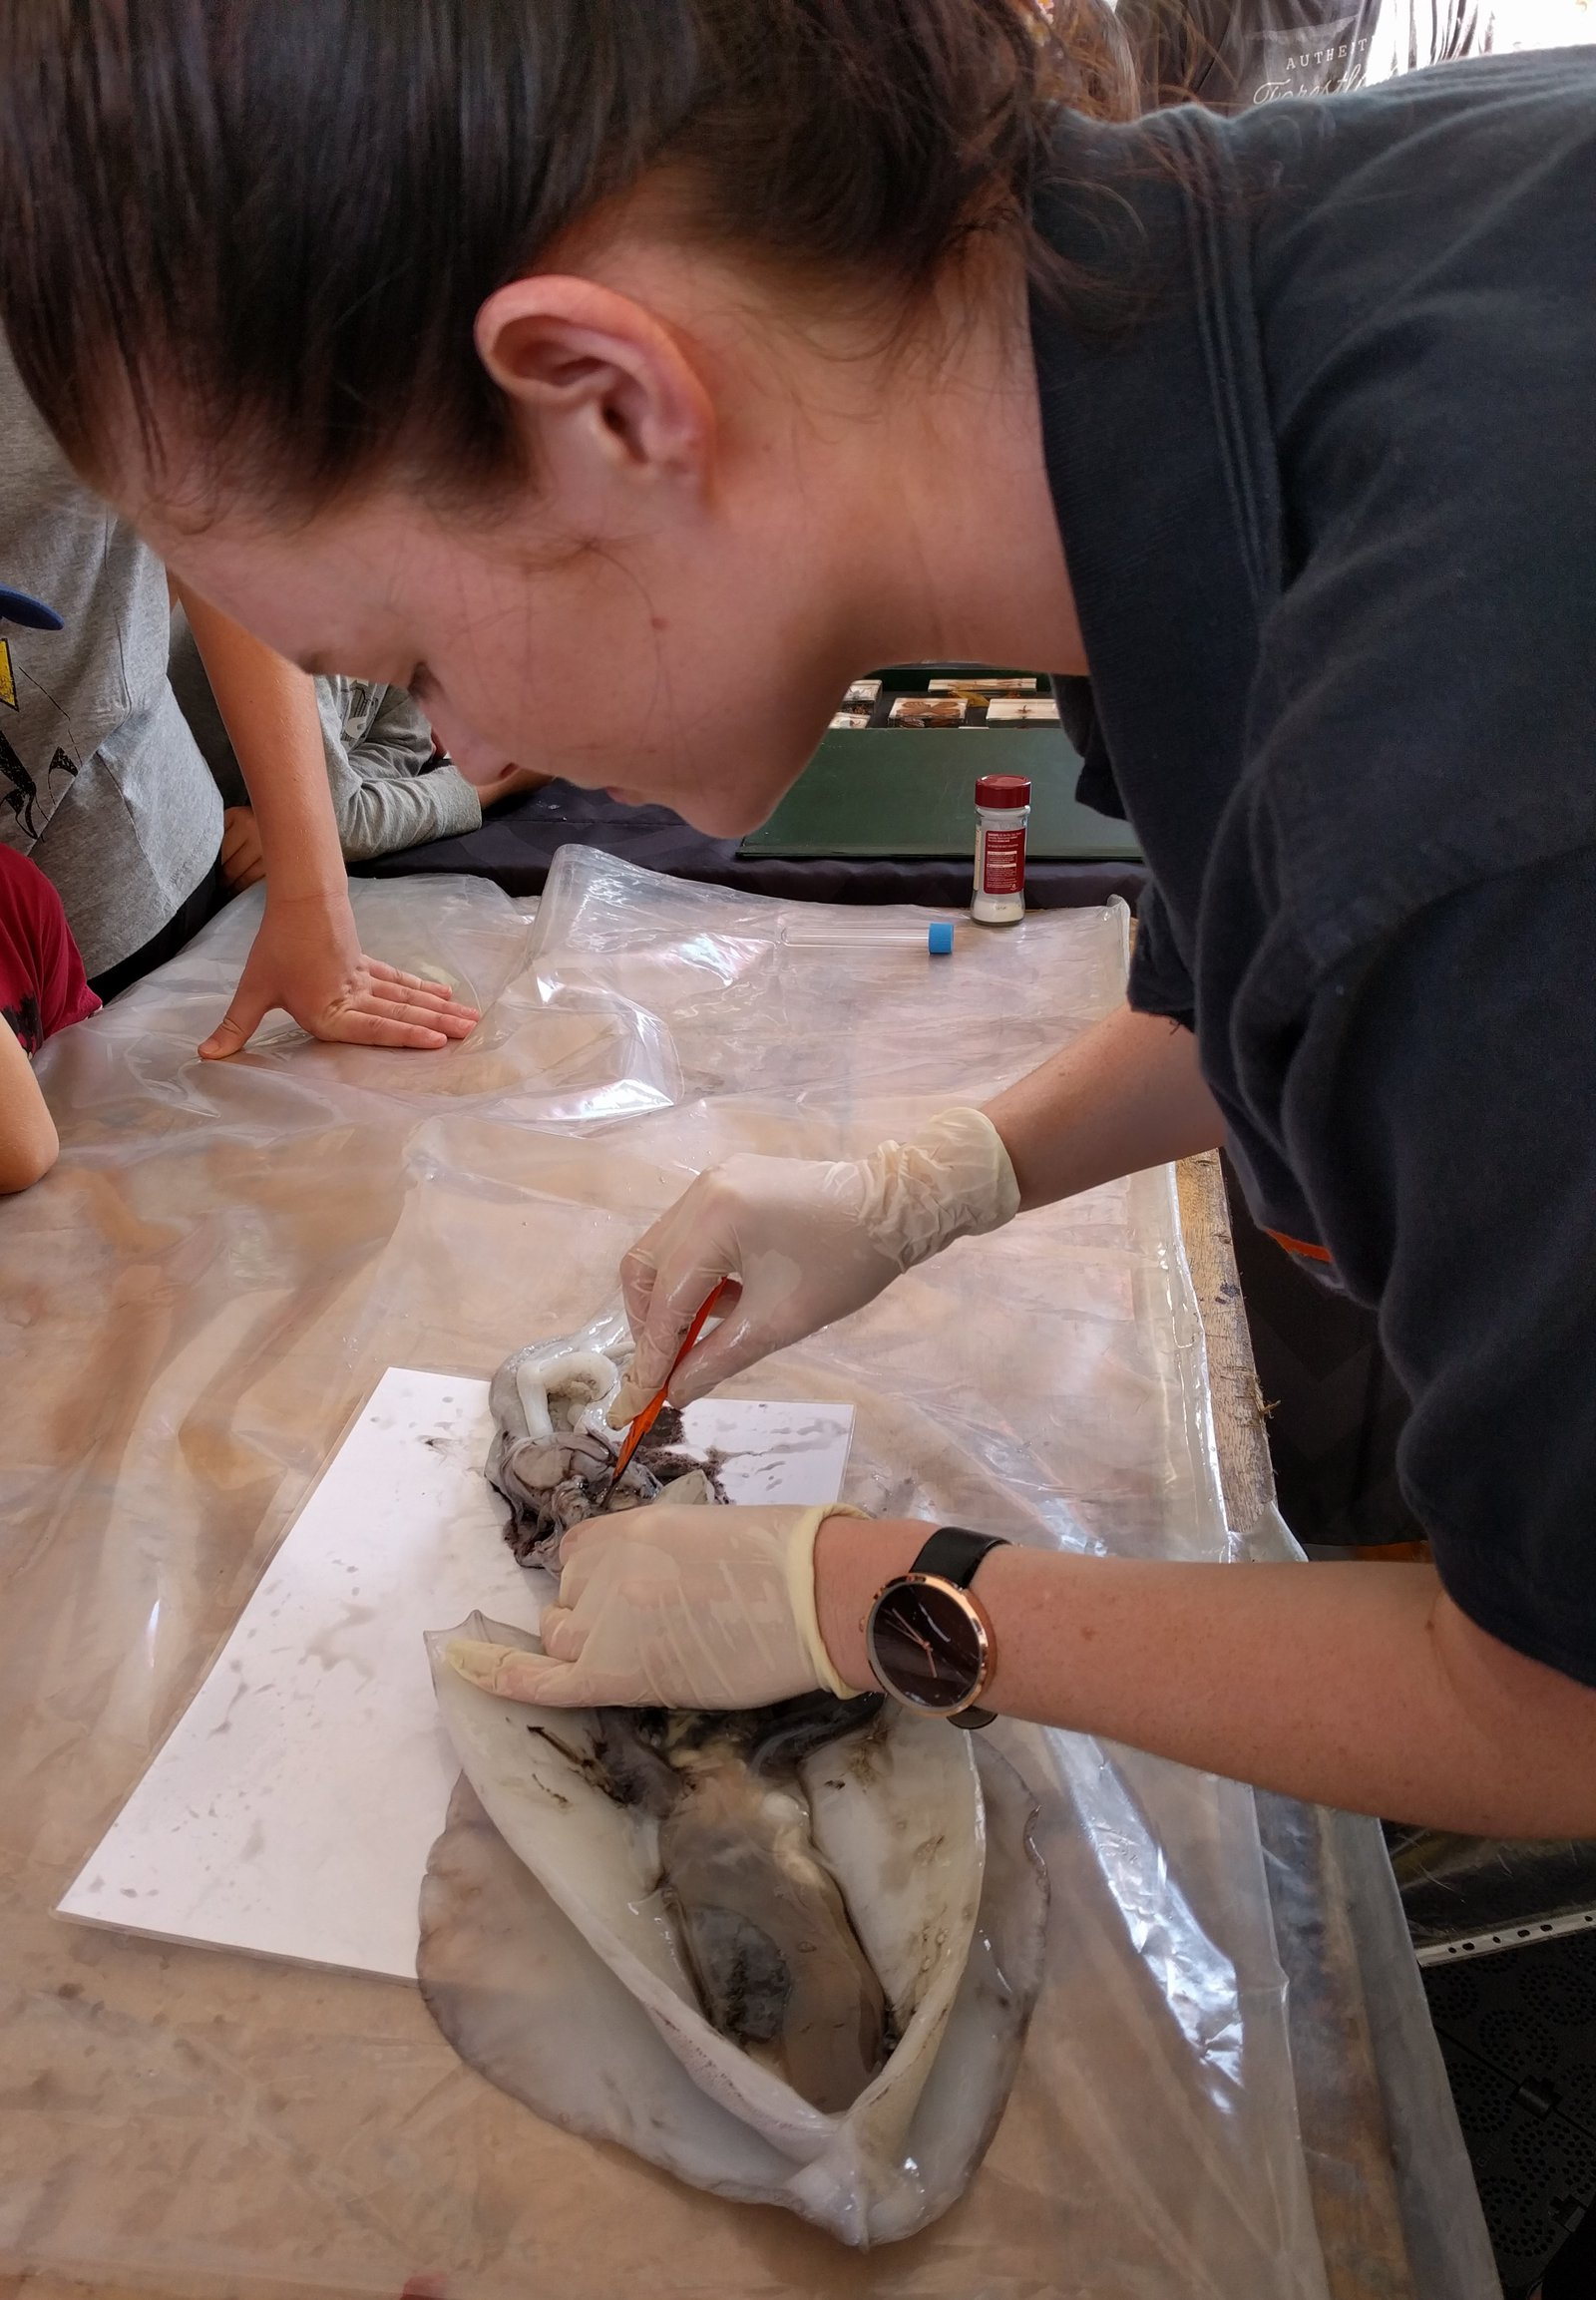 Squid Dissection - WSF